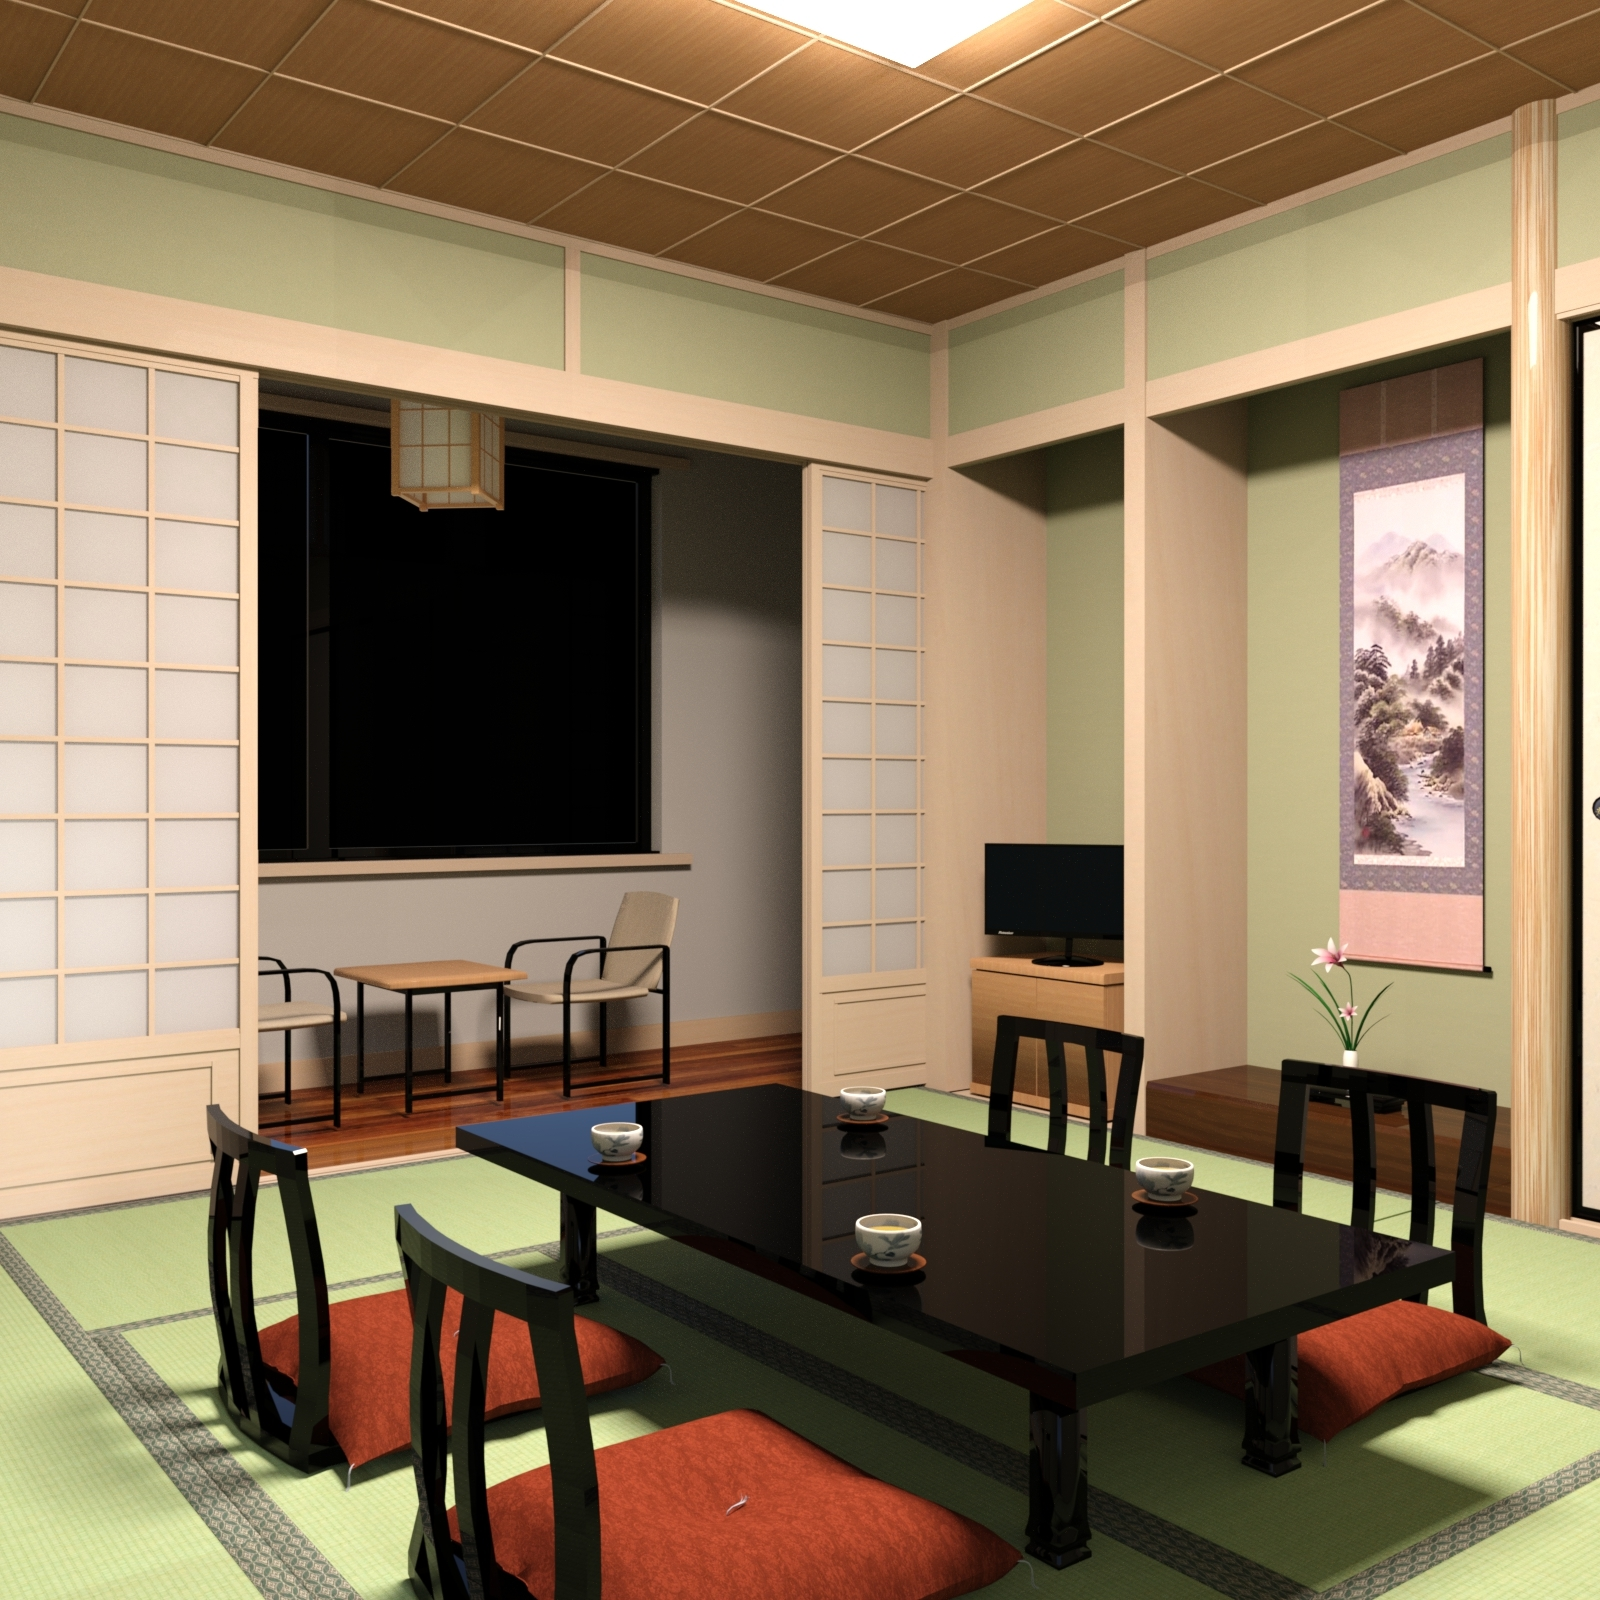 Stupendous Traditional Japanese Style Inn Room For Dazstudio 3D Models Download Free Architecture Designs Xaembritishbridgeorg